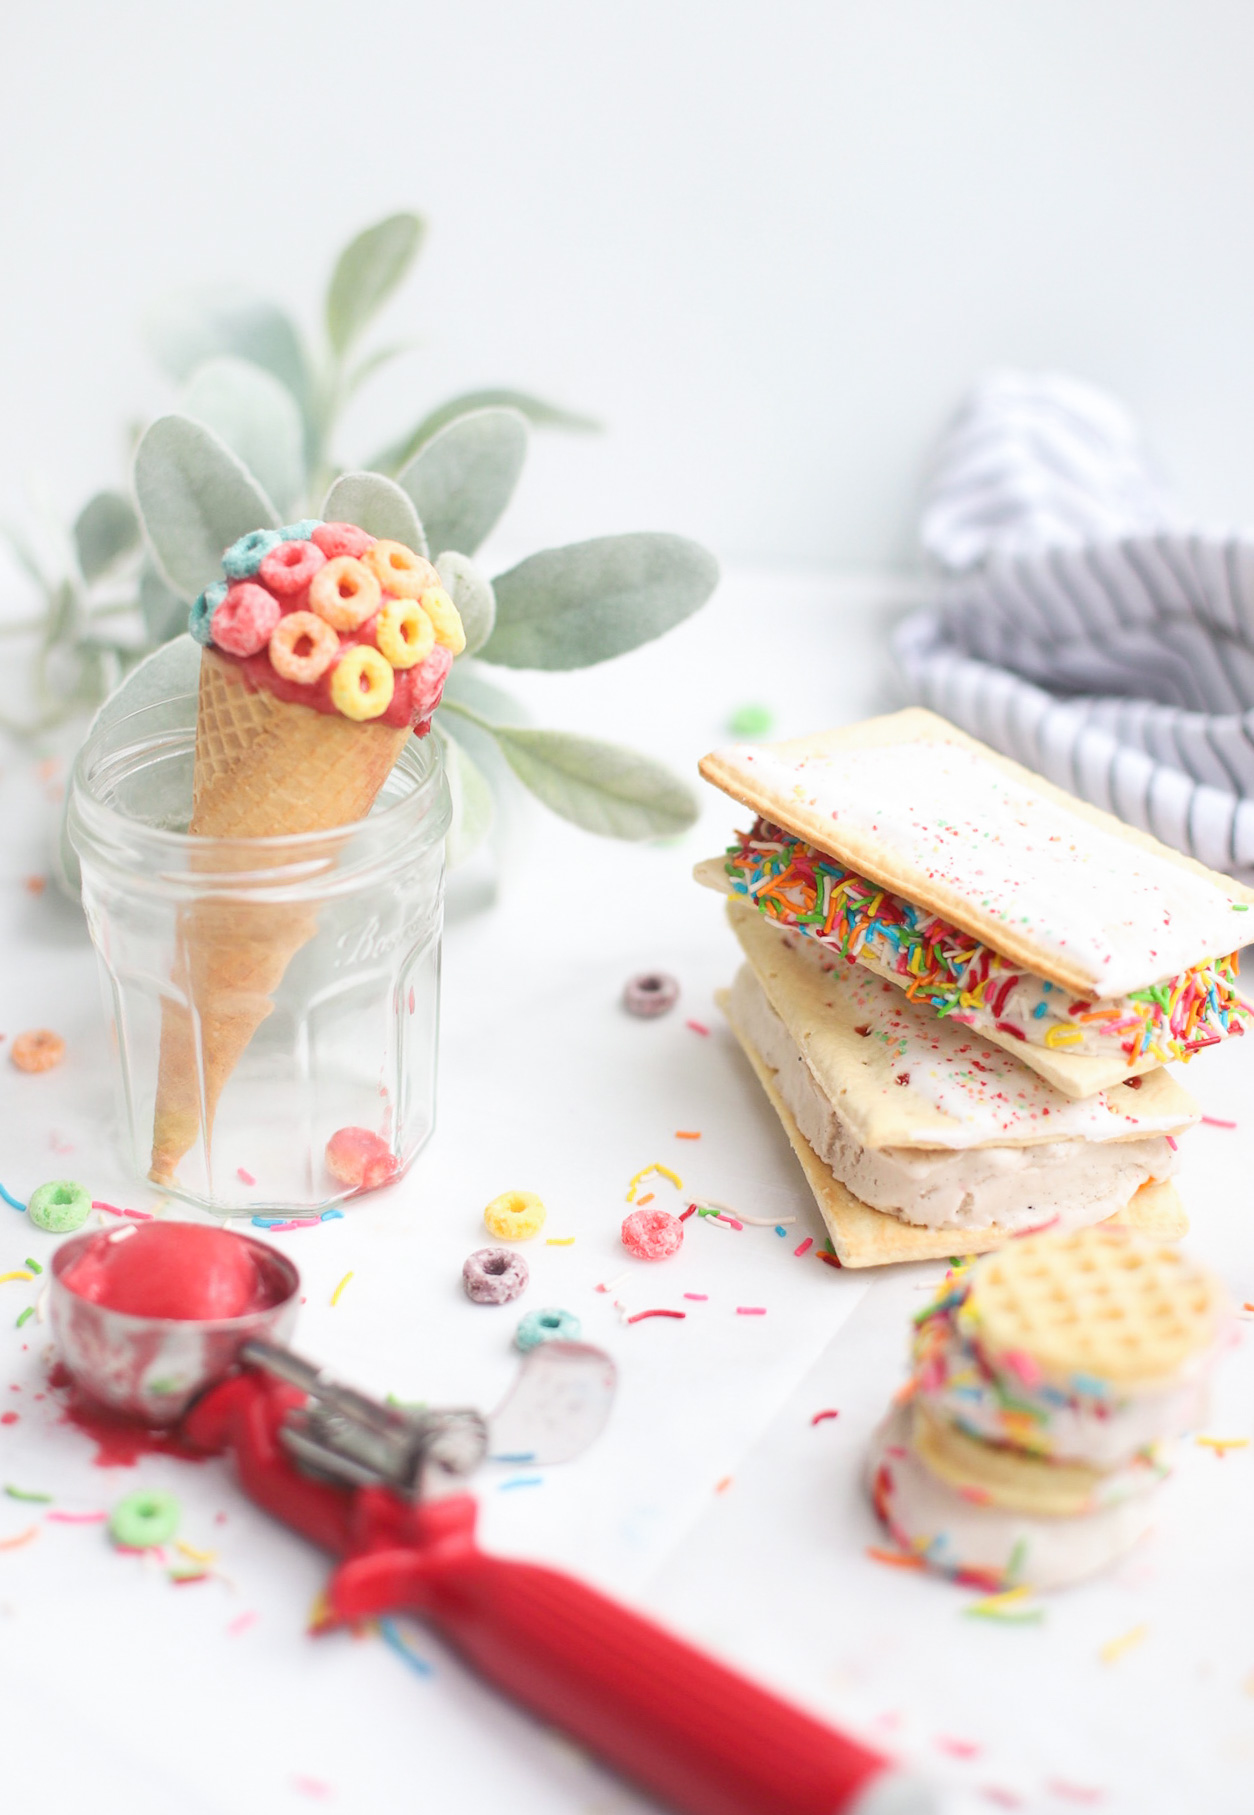 Soak up summer and make an afternoon extra special with the coolest, sweetest, family-friendly activity that's perfect for hot summer days → turn pantry staples into tasty ice cream desserts with the yummiest ice cream hacks! | @glitterinclexi | GLITTERINC.COM